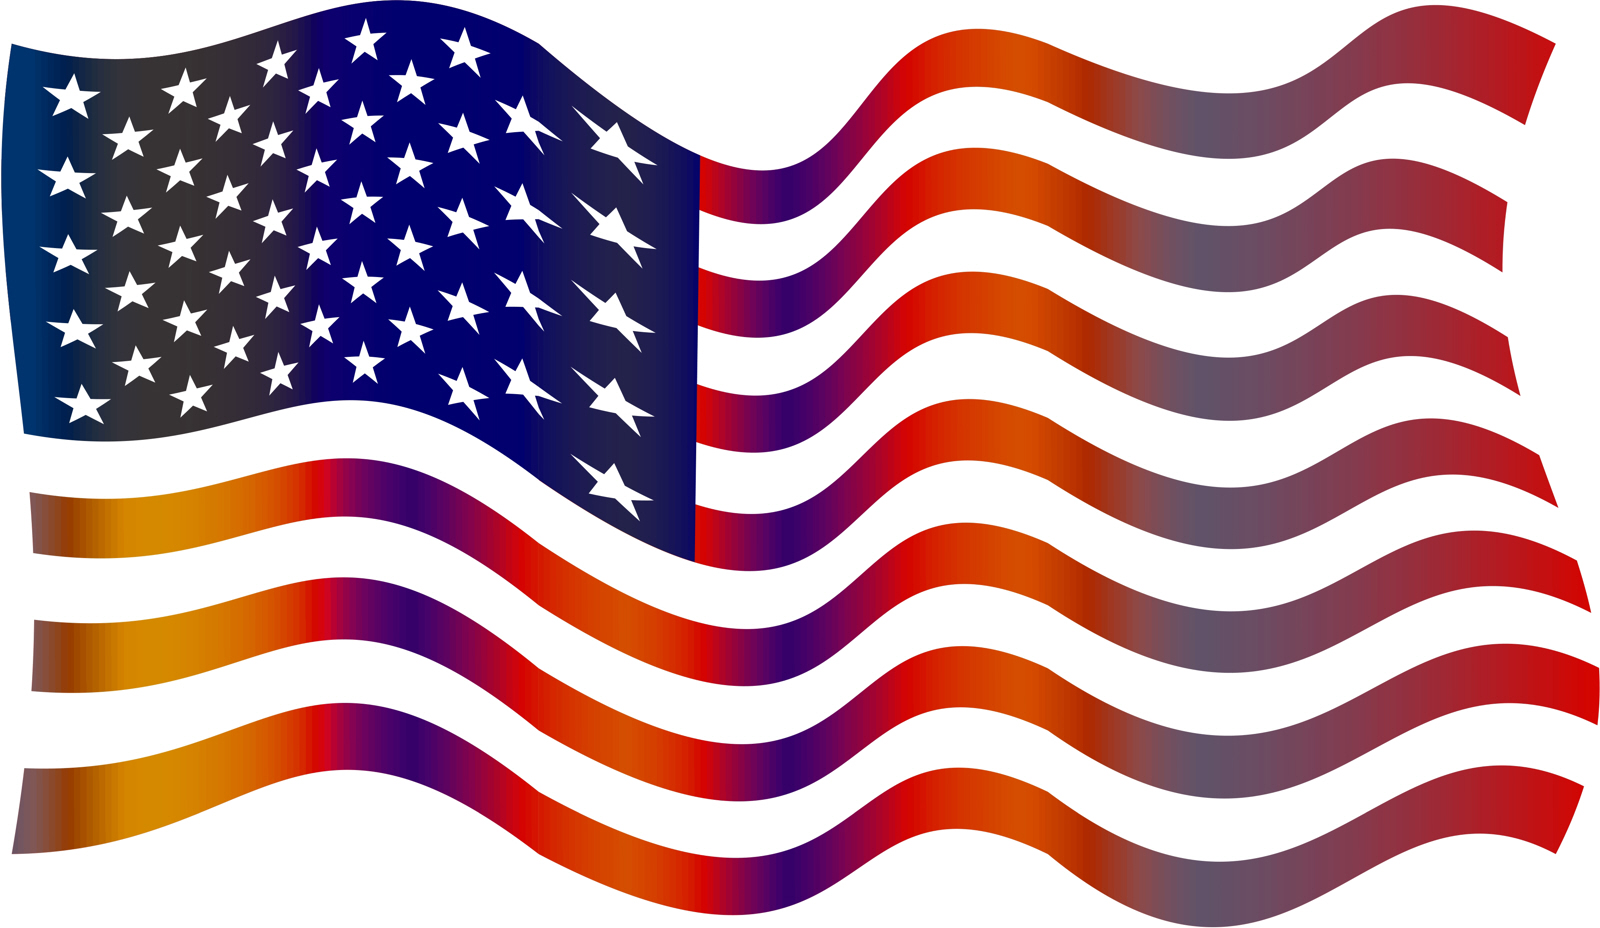 Free stock photo 9056 flags american flag freeimageslive - Uk flag images free ...